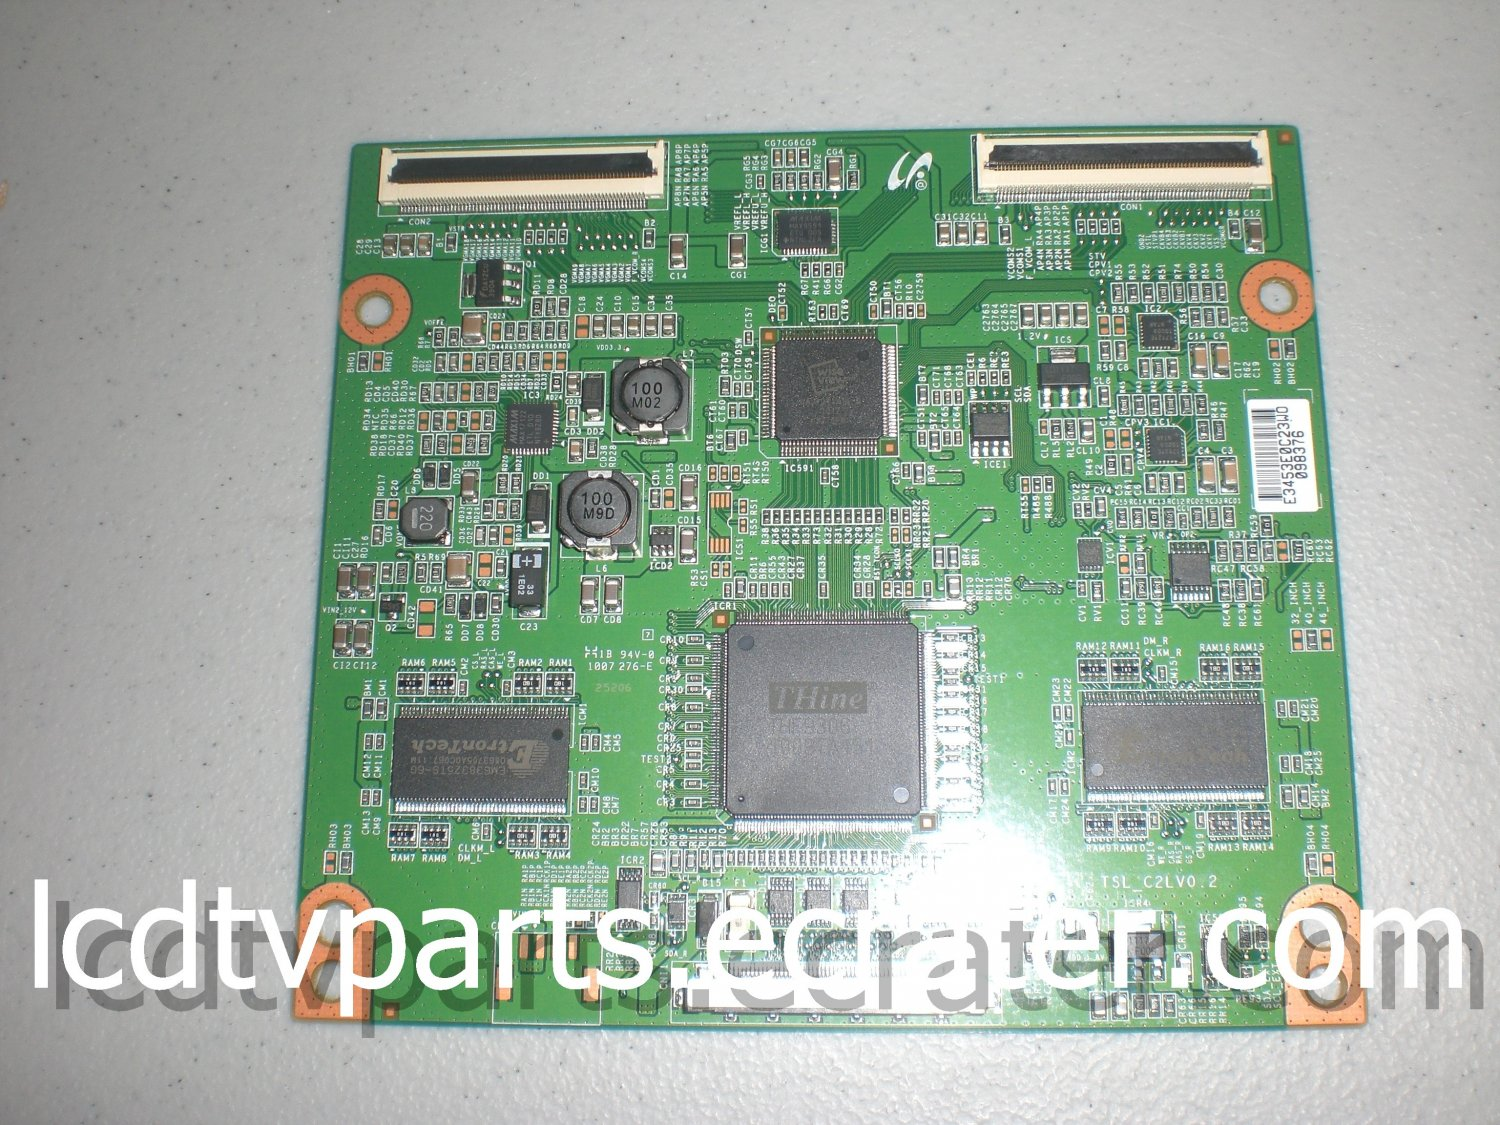 LJ94-03453E, TSL_C2LV0.2, 1-857-715-11, T-Con Board for SONY KDL-40EX600